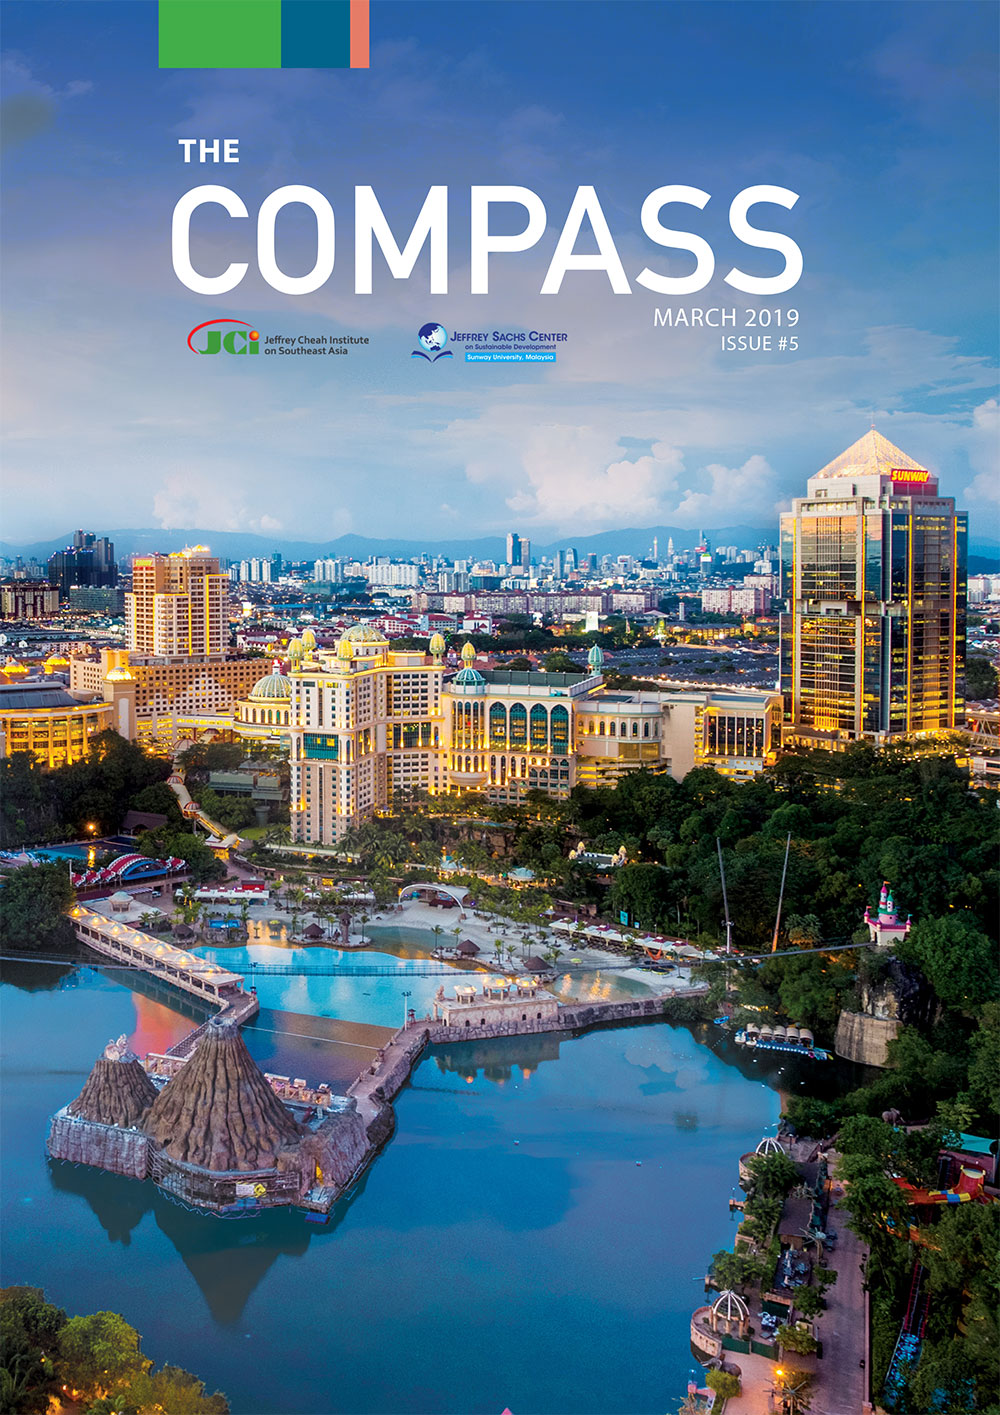 The Compass Issue #5